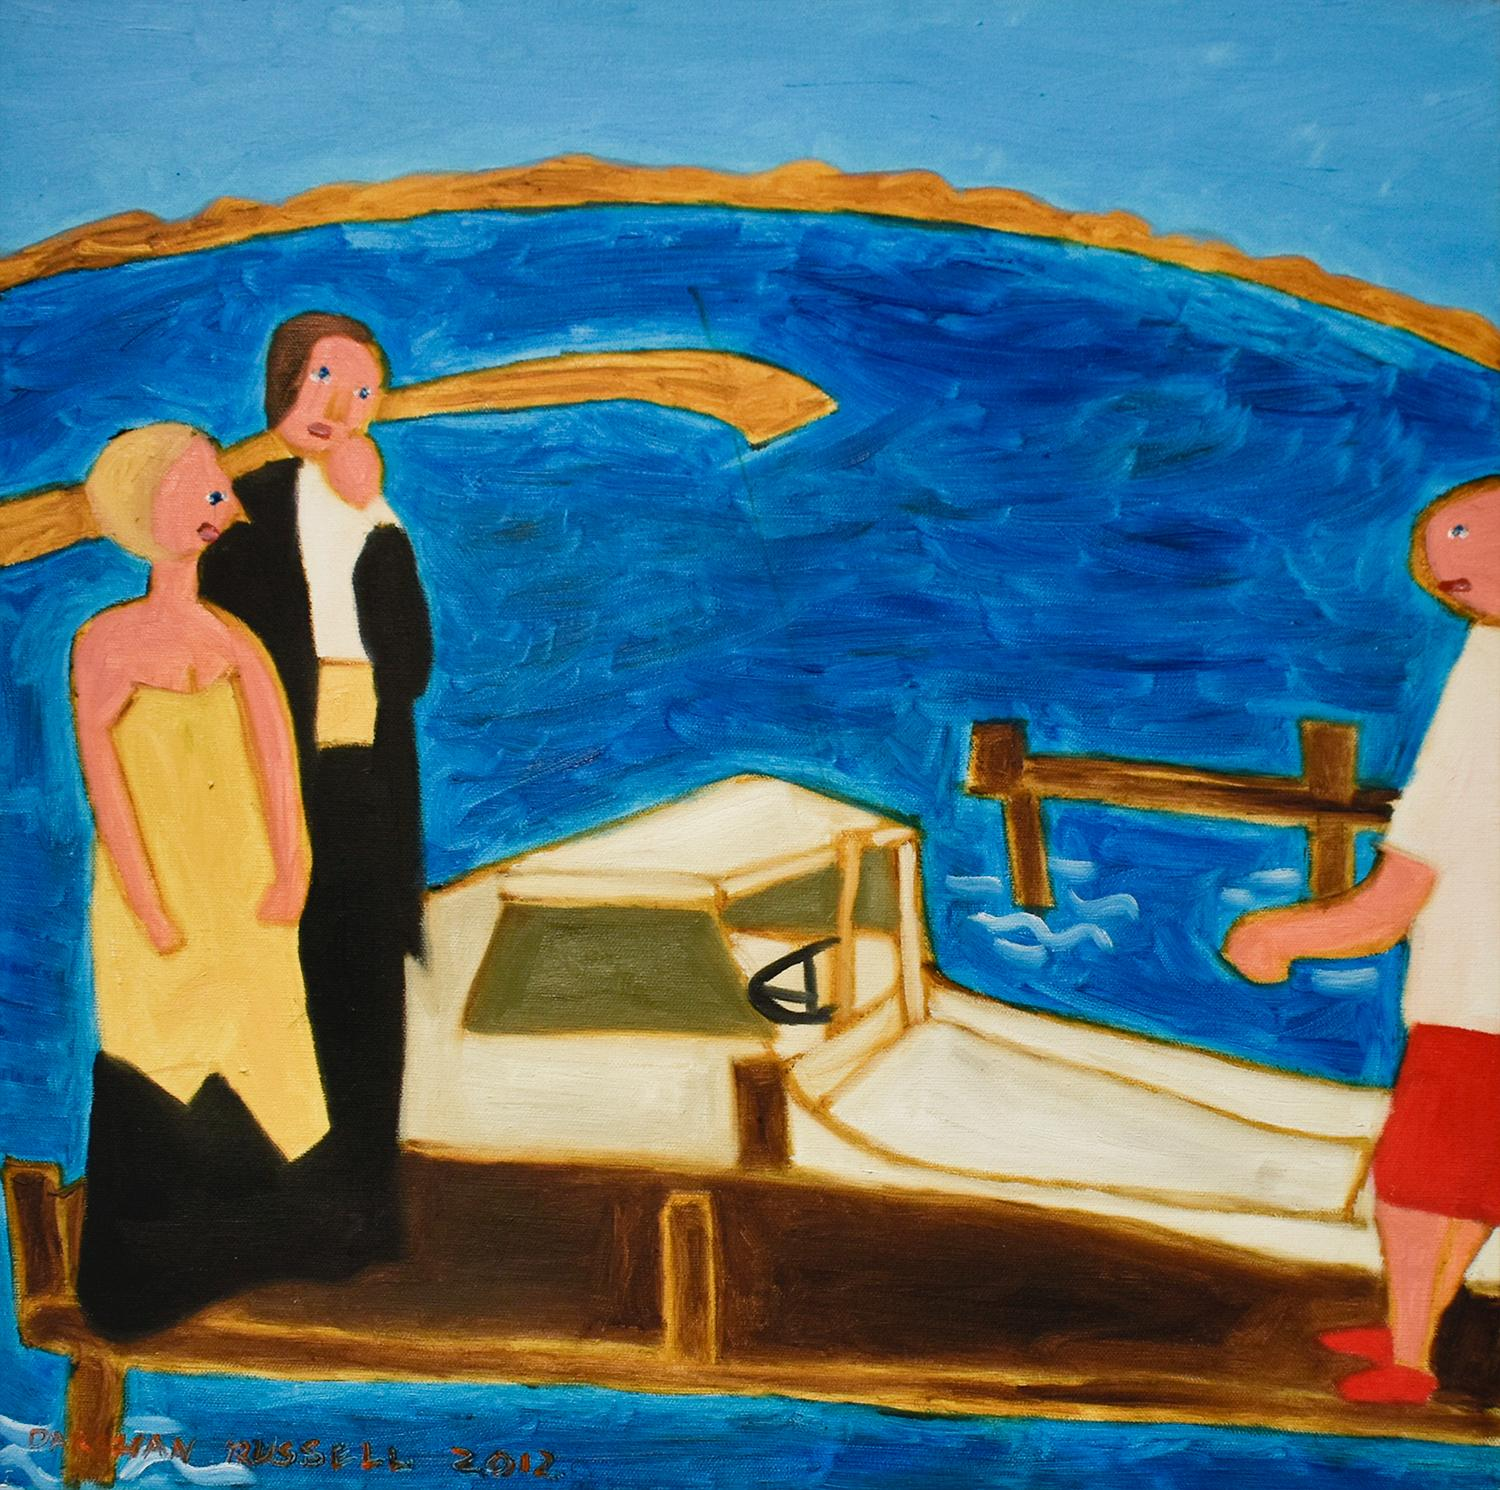 Prom Night on the Deck (Figurative Faux-Naif Oil Painting on Canvas)